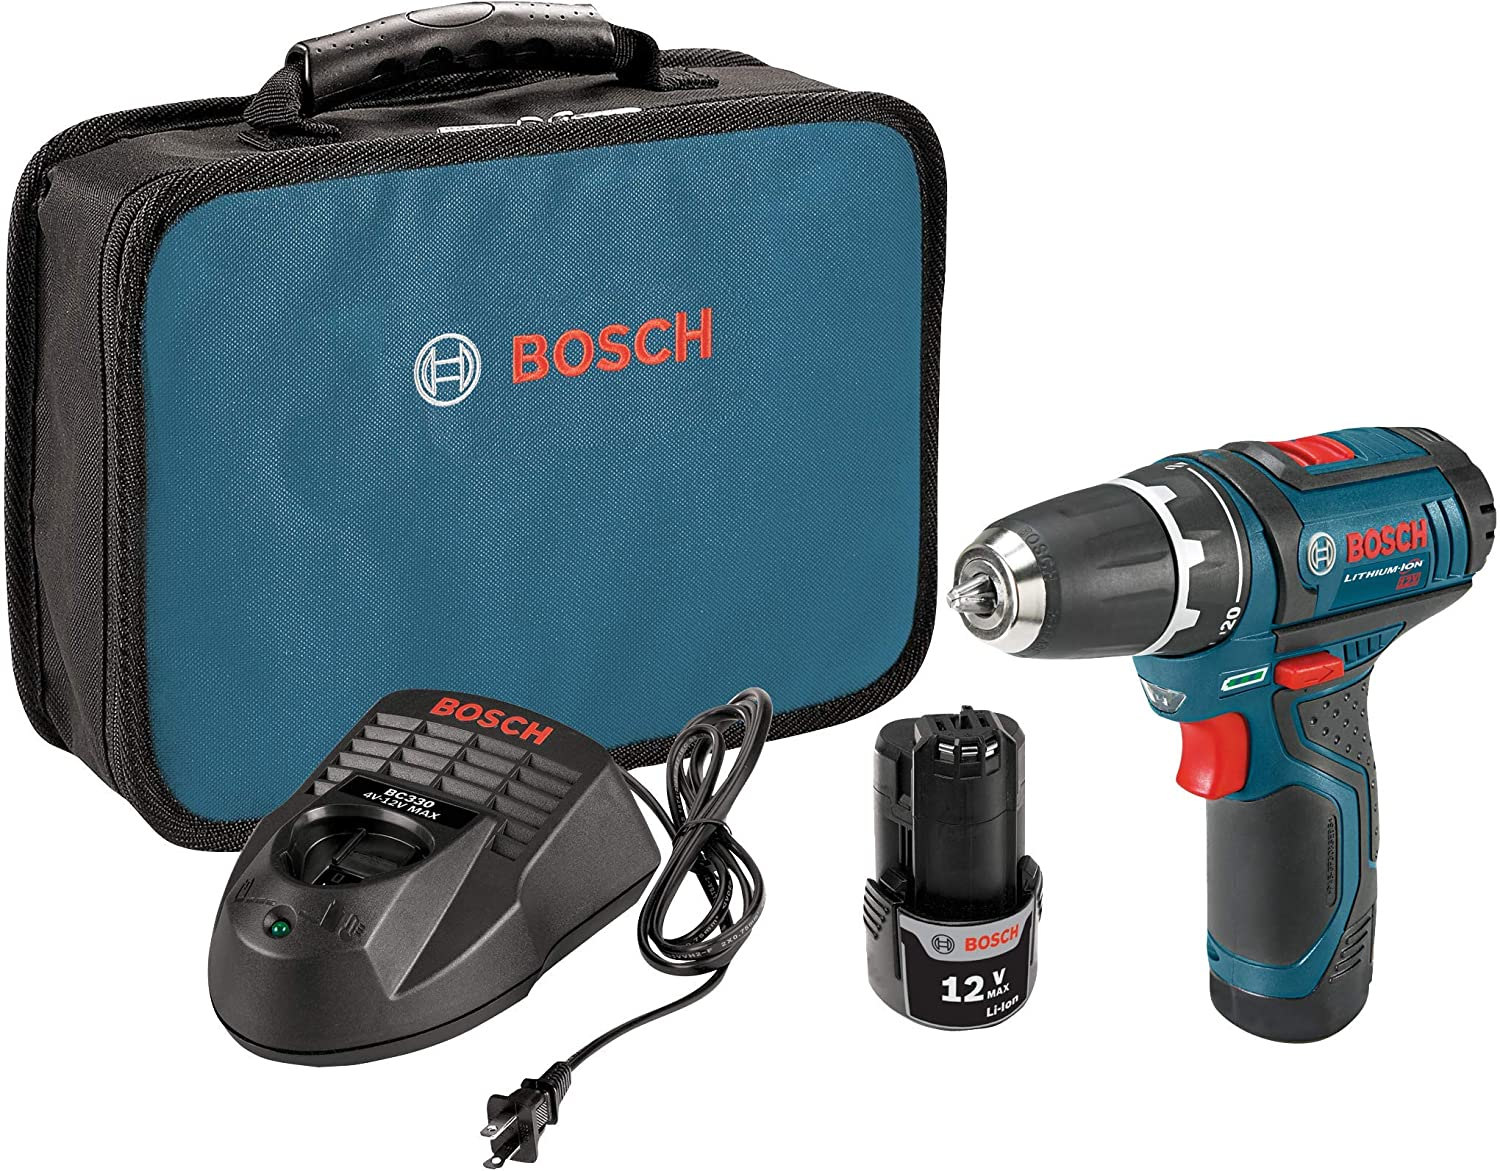 Bosch Power Tools Drill Kit